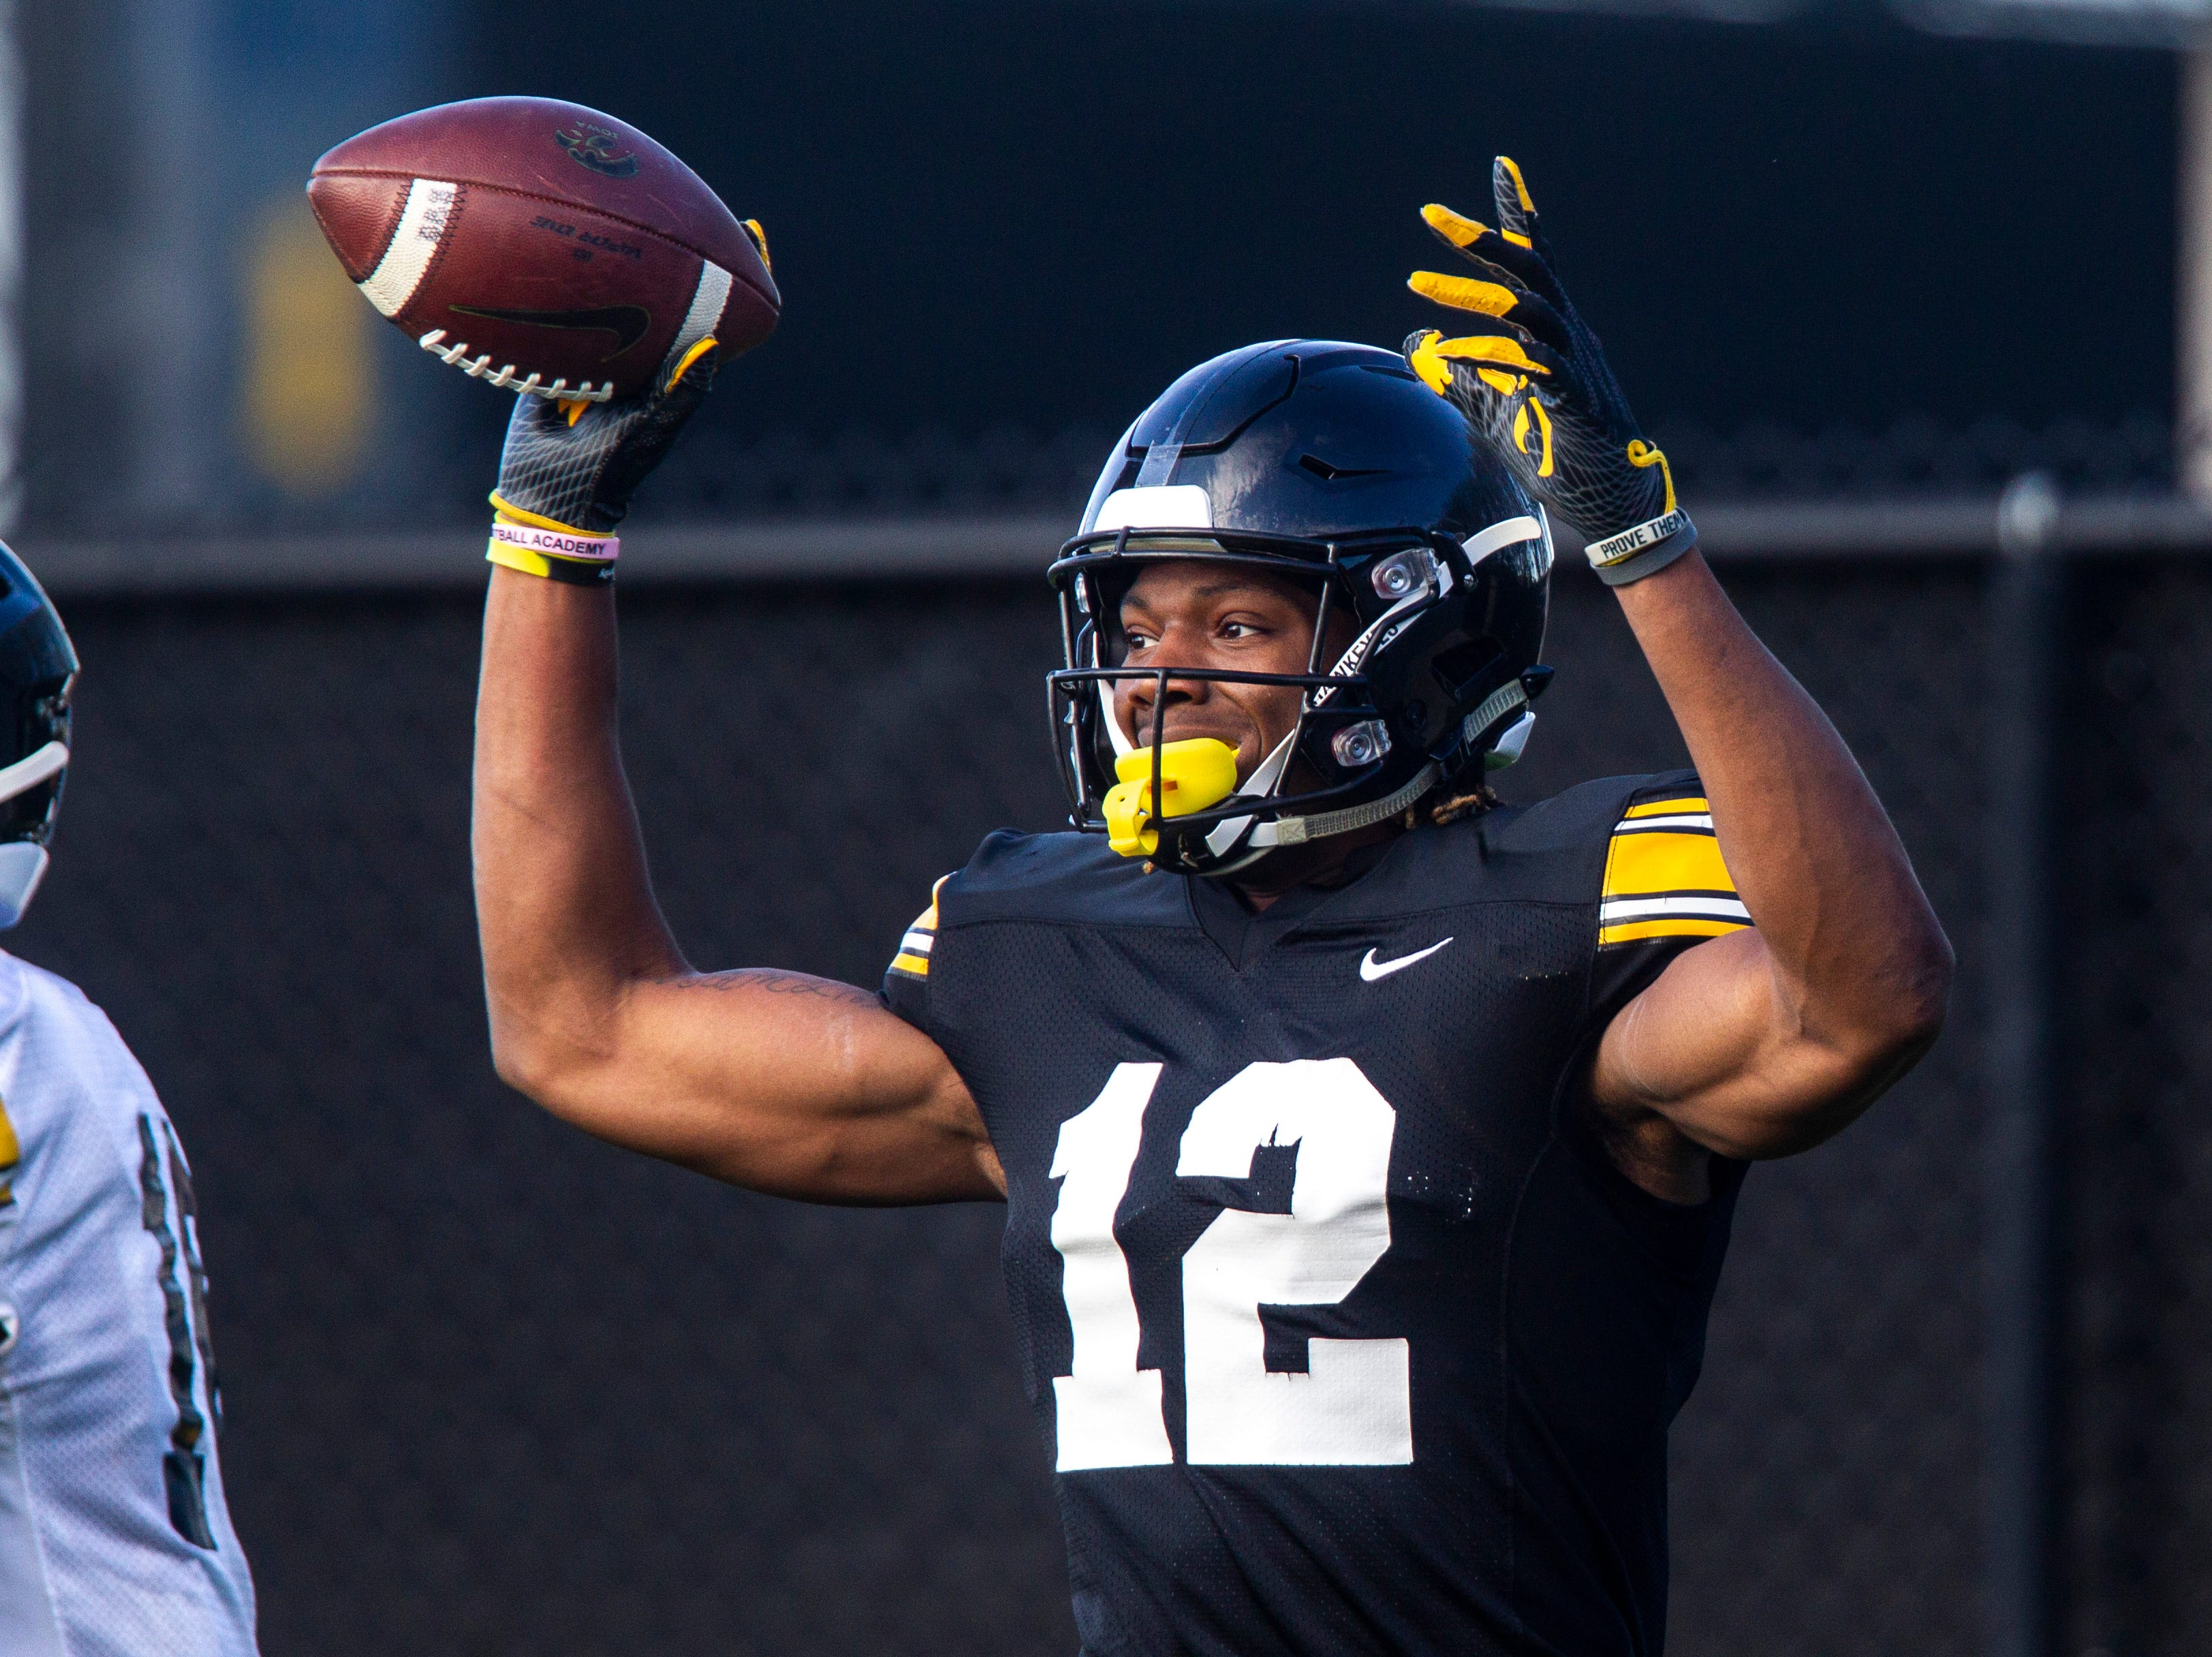 Iowa wide receiver Brandon Smith (12) celebrates after catching a touchdown pass during the final spring football practice, Friday, April 26, 2019, at the University of Iowa outdoor practice facility in Iowa City, Iowa.